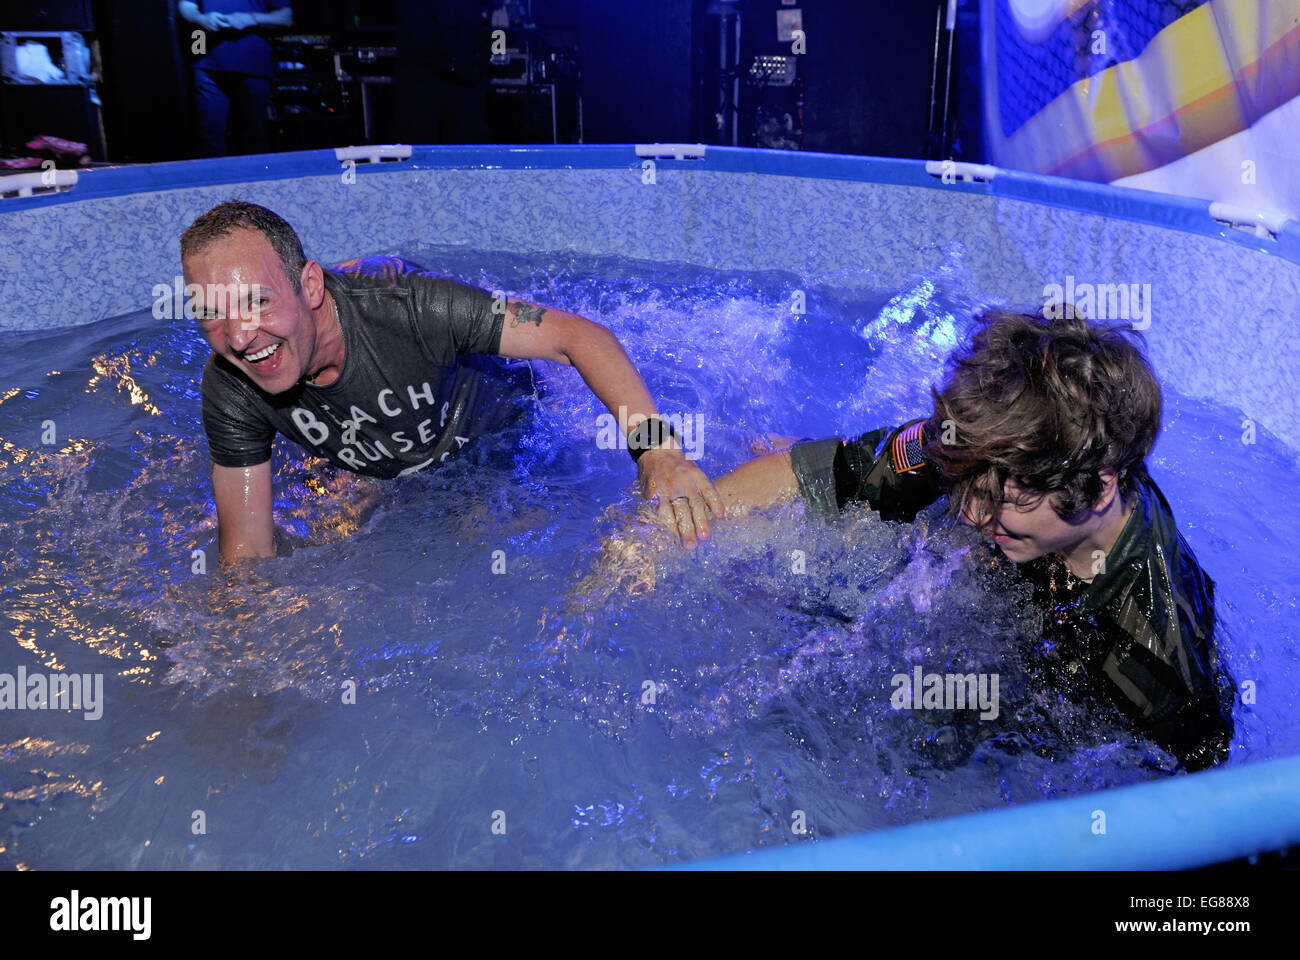 Union J Perform And Get Wet At G A Y Pool Party Featuring Union Stock Photo Royalty Free Image